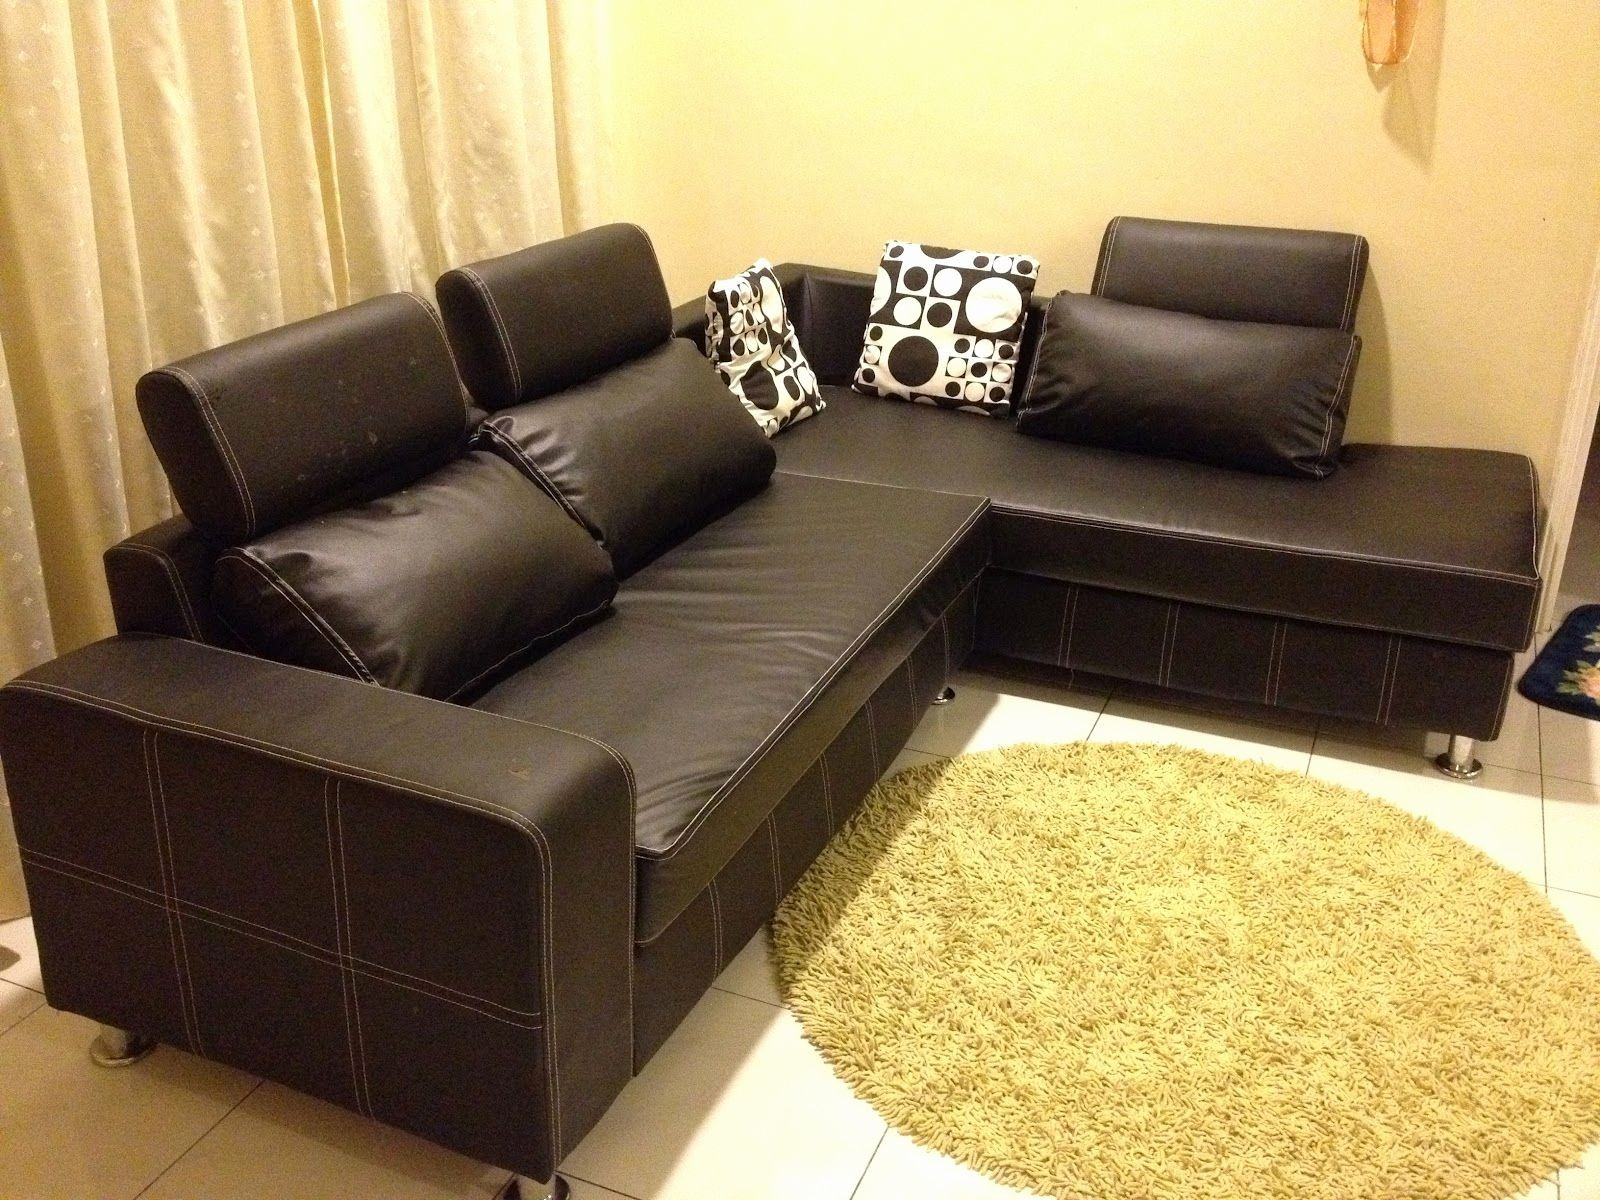 Used Sectional sofas Fresh Unique Microfiber Sectional sofas for Sale Microfiber Sectional Model